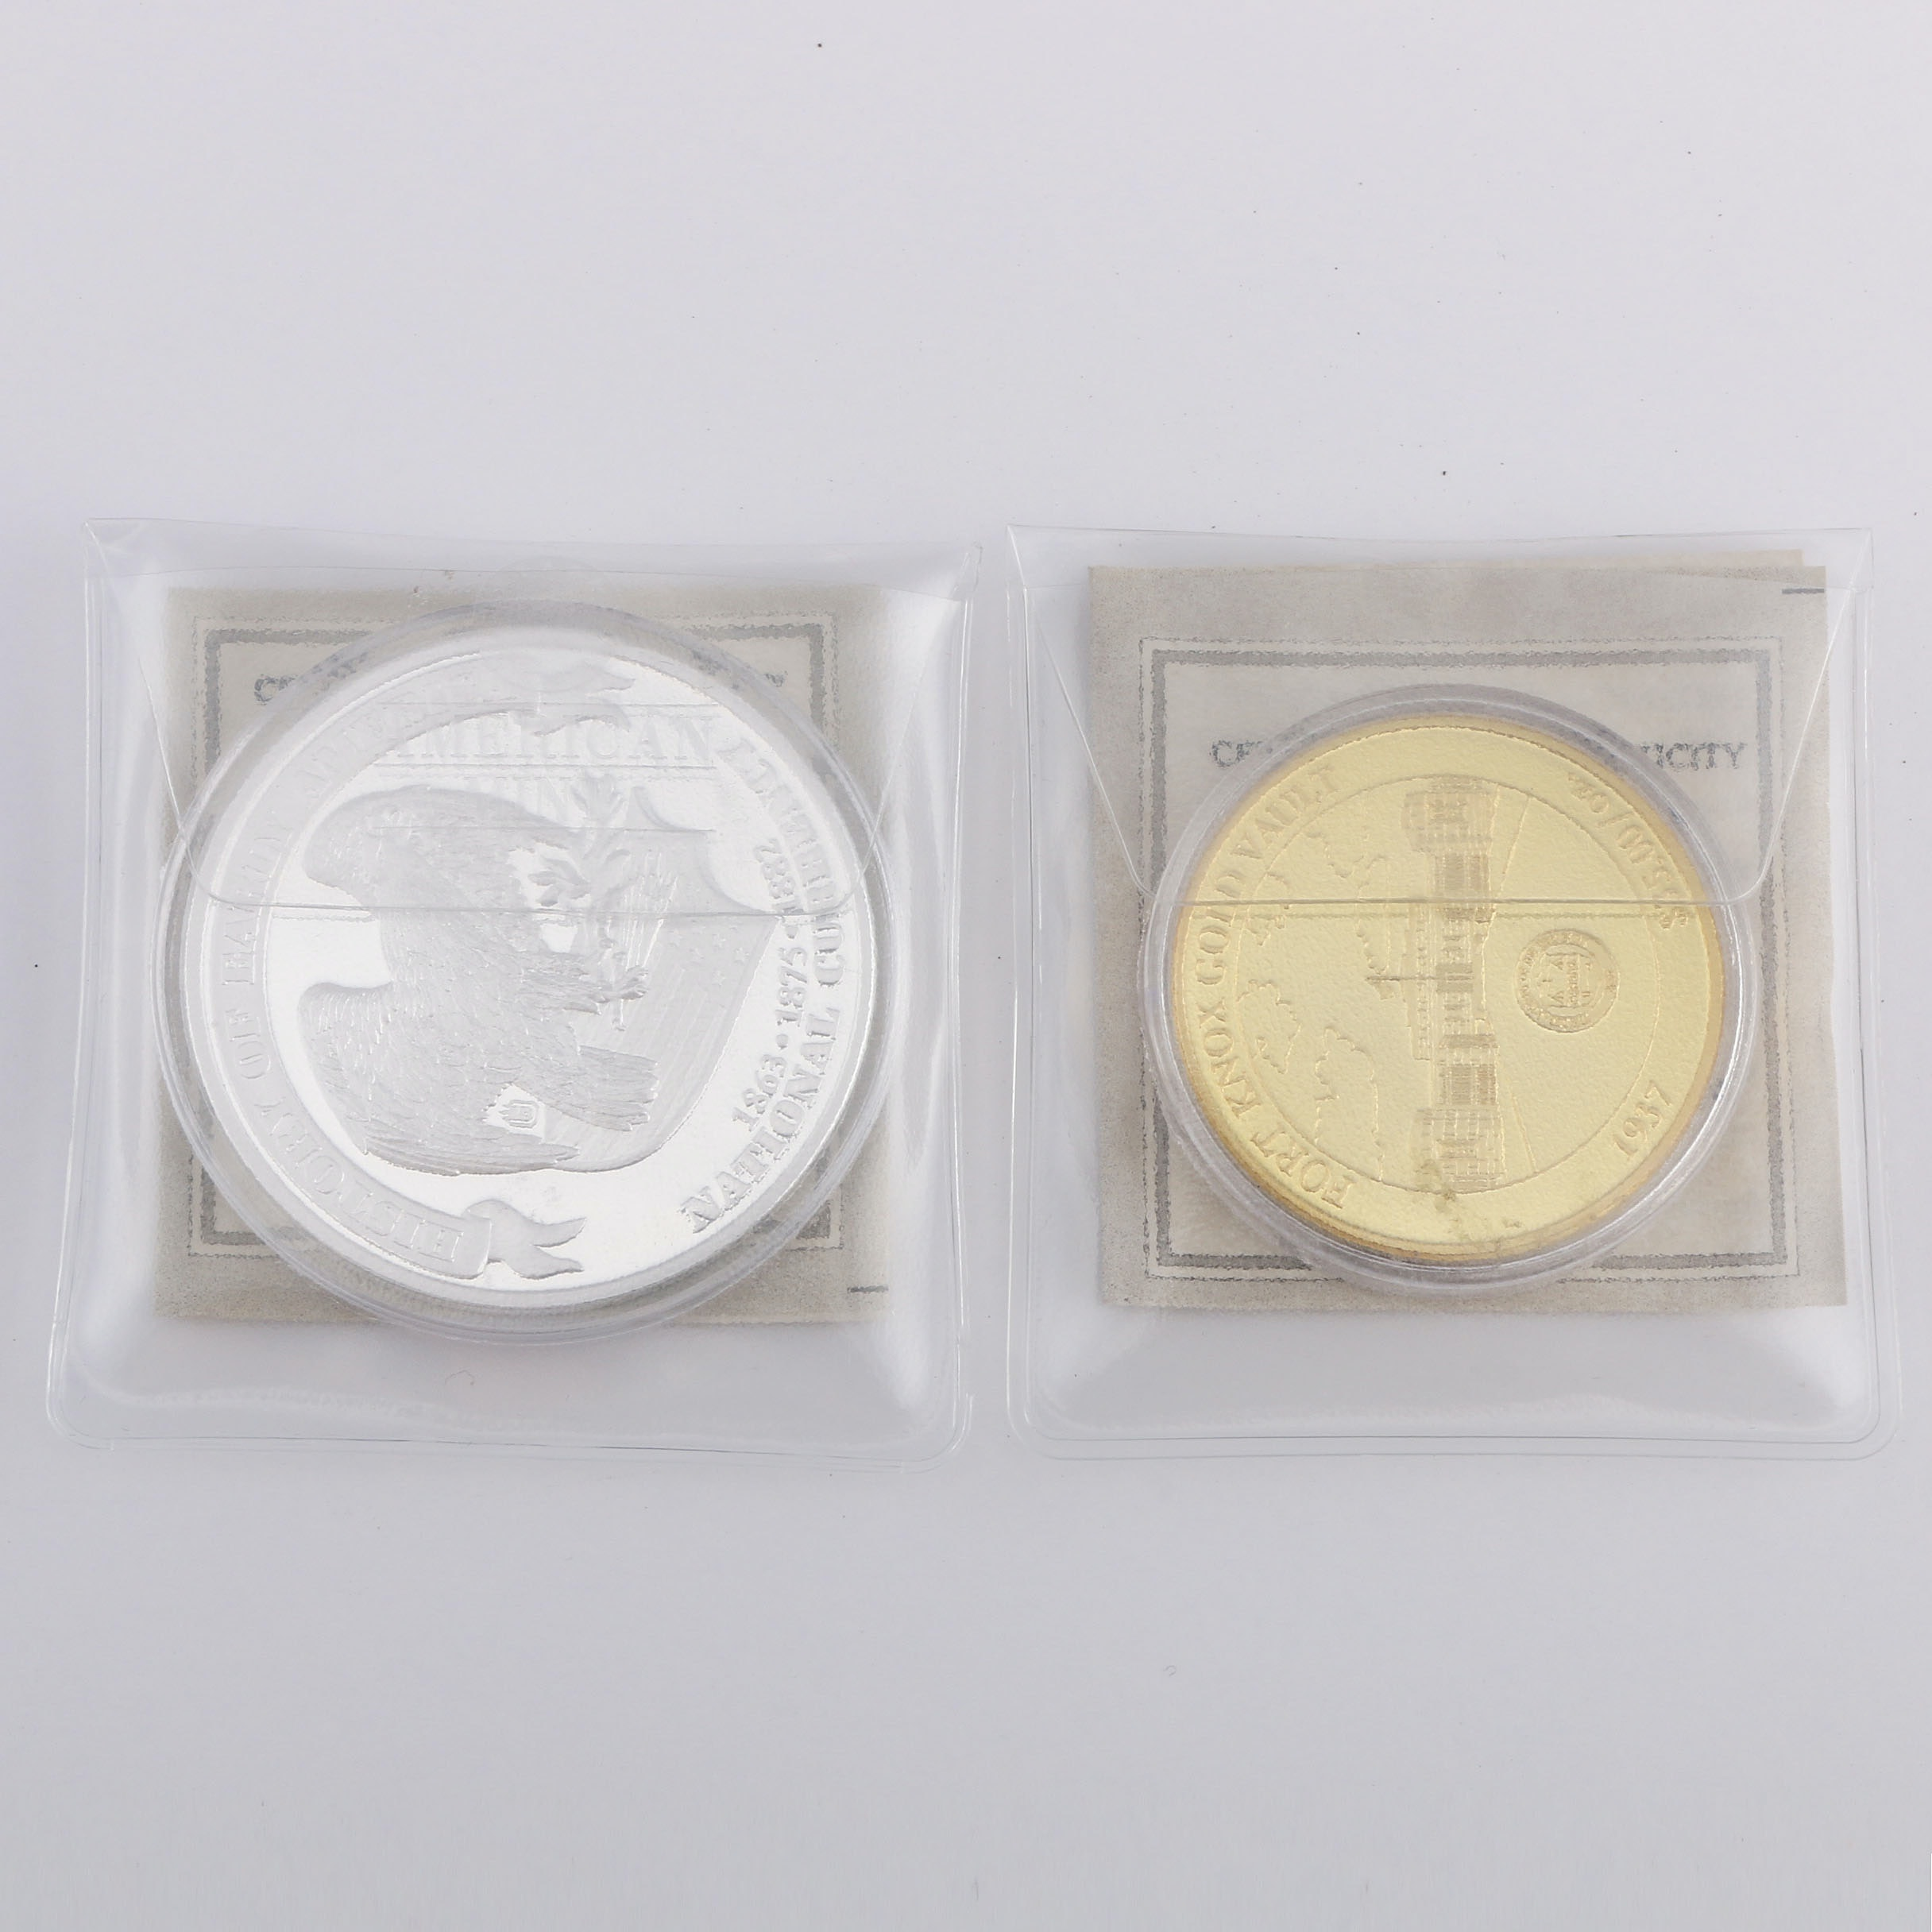 Uncirculated Commemorative Tokens